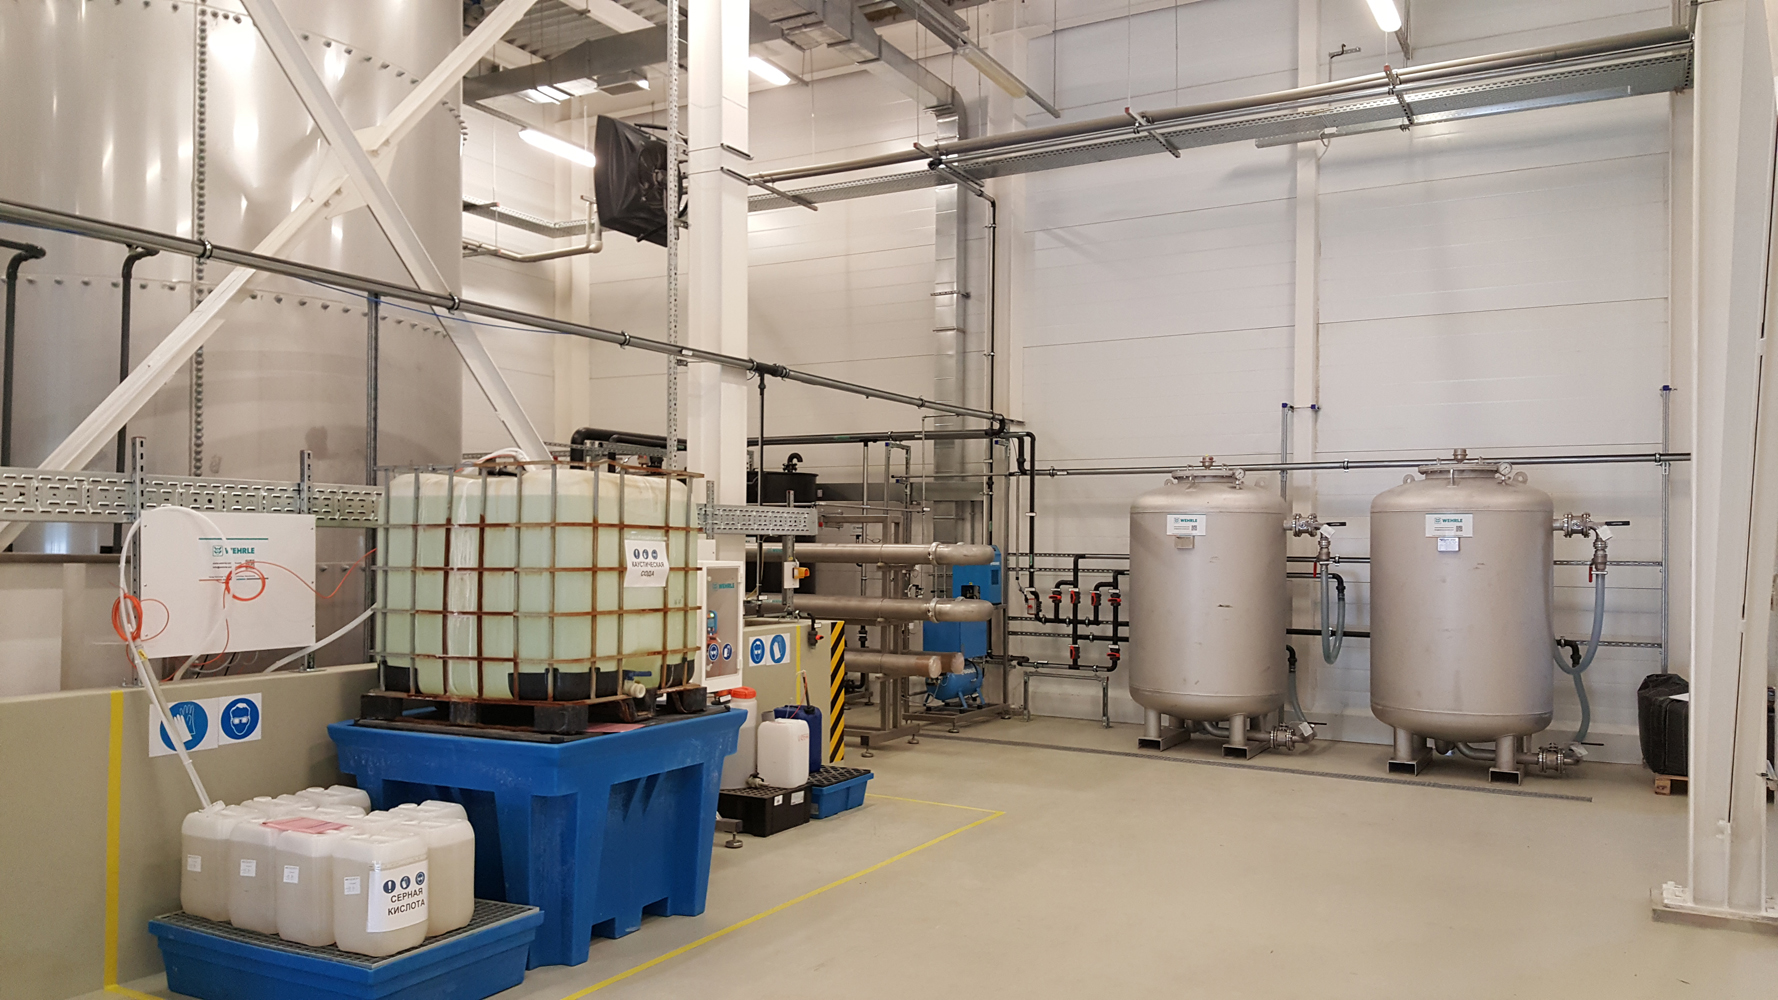 wastewater treatment plant for pharmaceutical industry - 2017, St. Petersburg (Russia) - WEHRLE